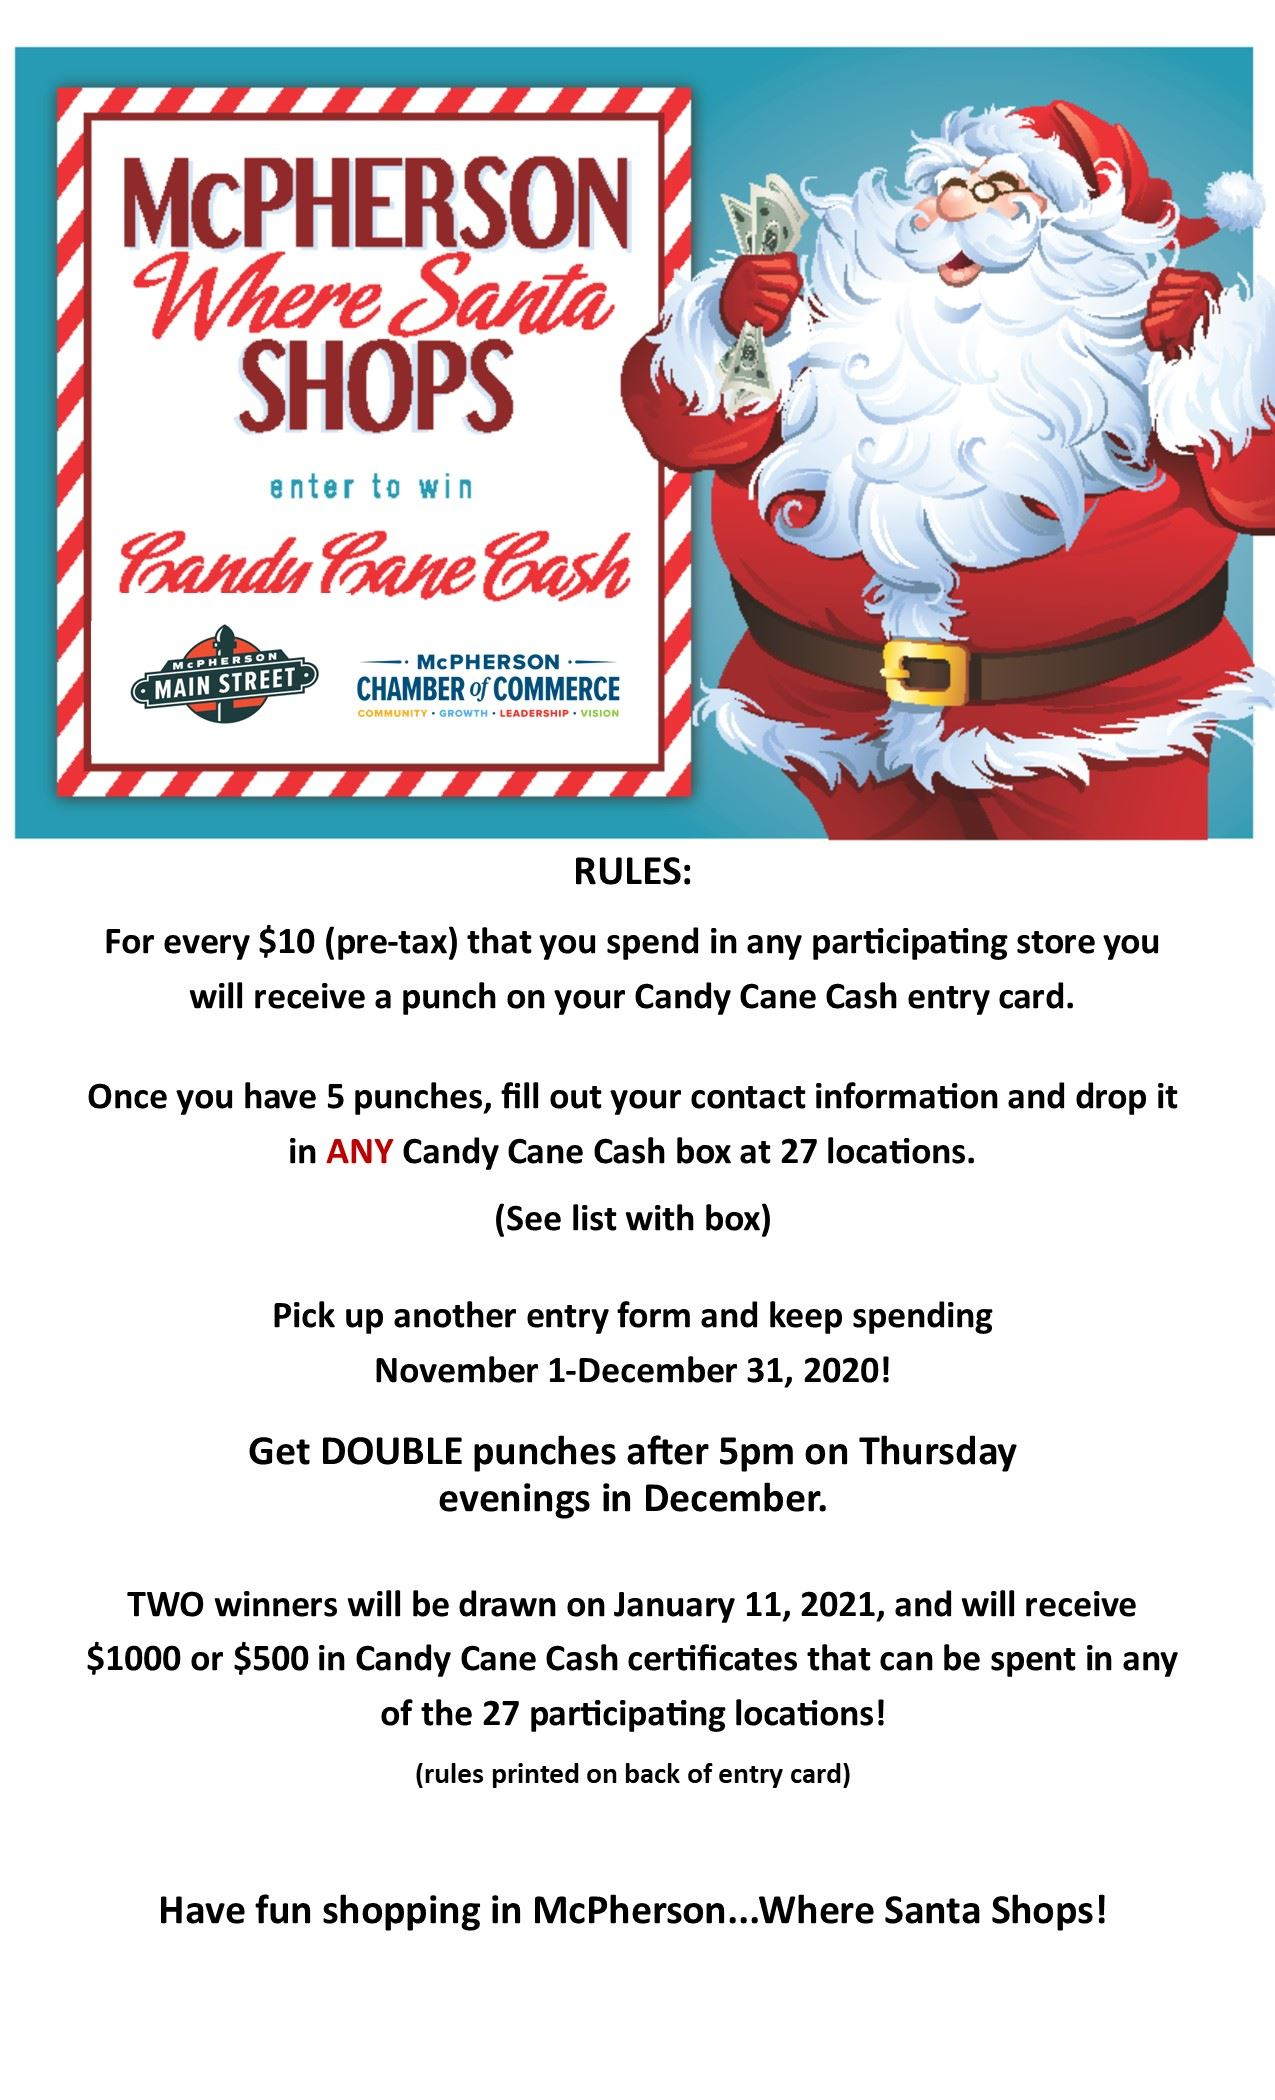 Poster promoting Candy Cane Cash Promo